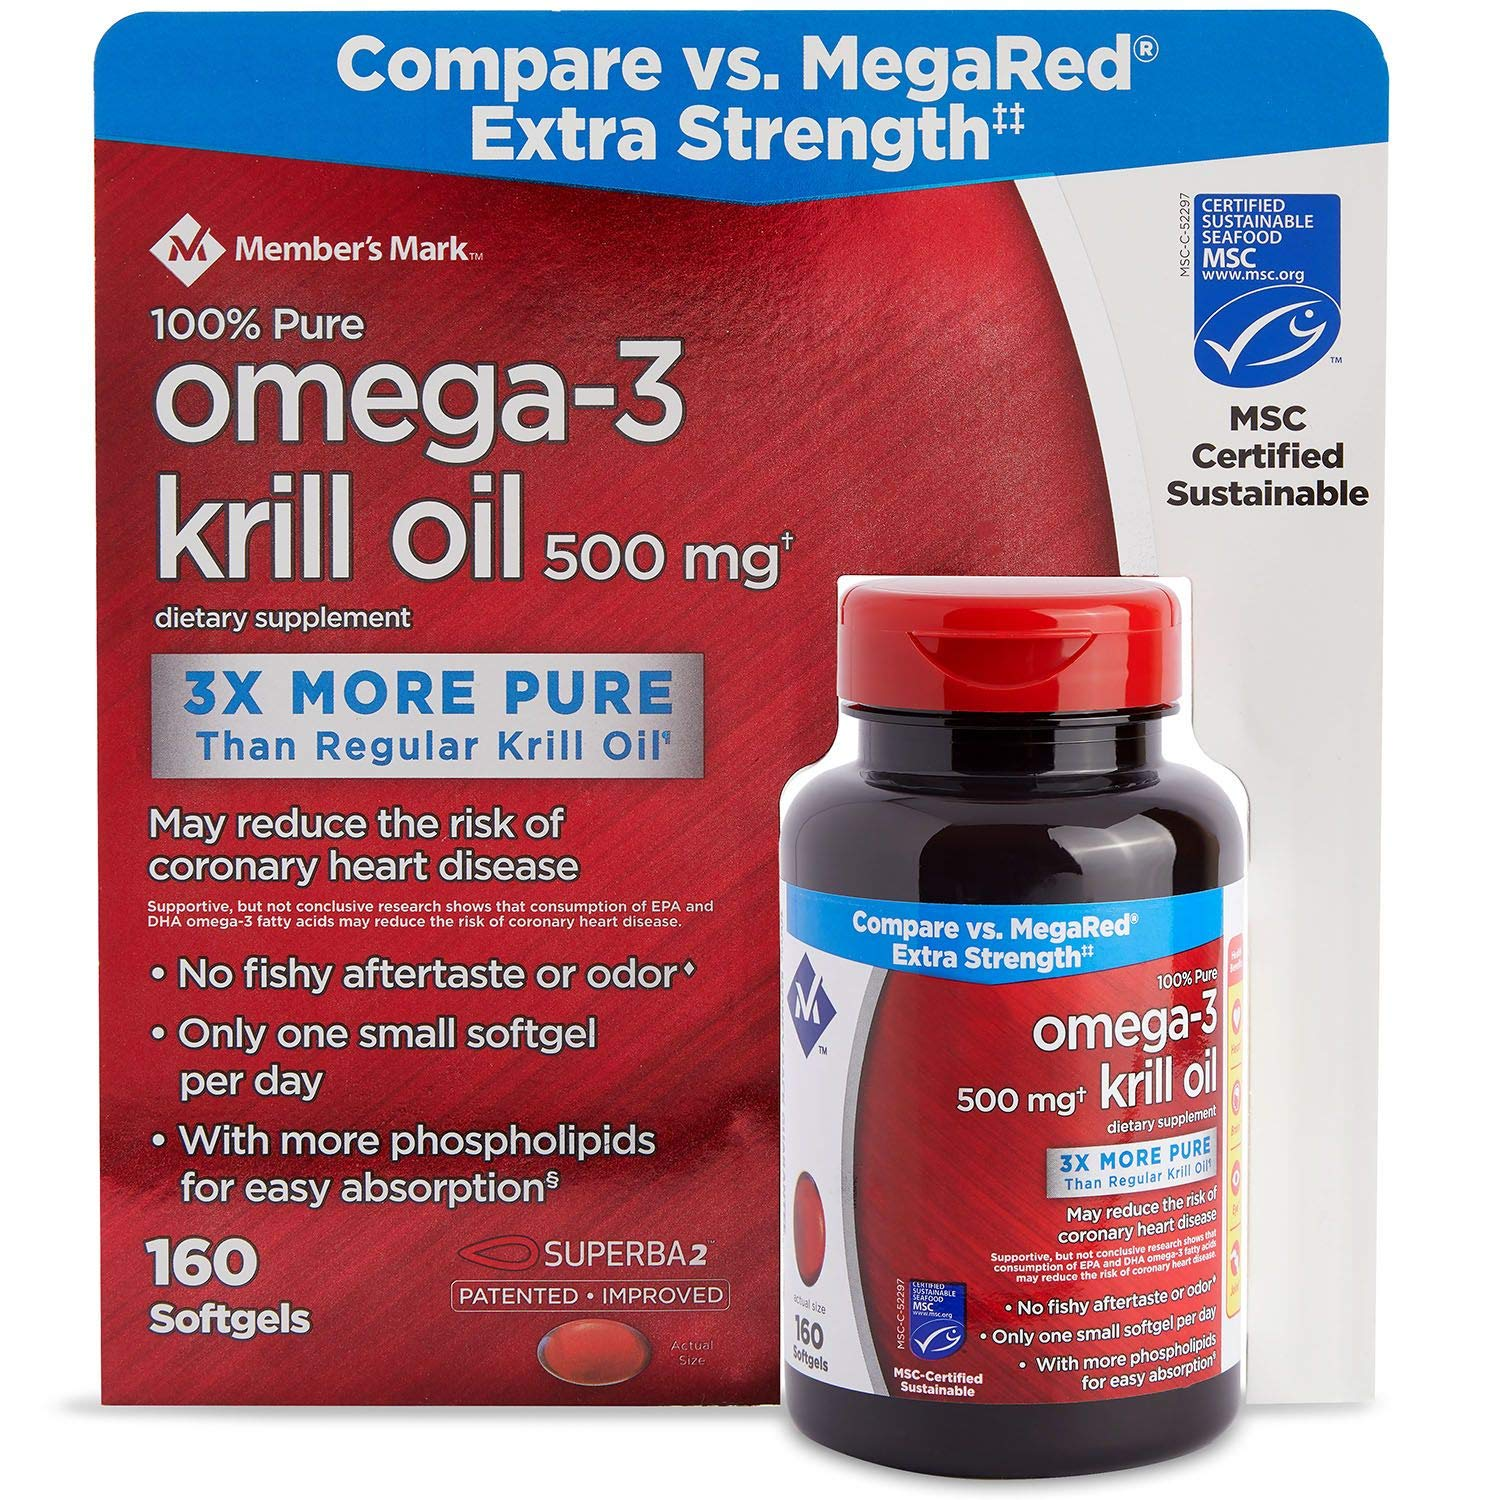 Member's Mark Extra Strength 100% Pure Omega-3 Krill Oil (160 ct.) (Jar of 4) AS